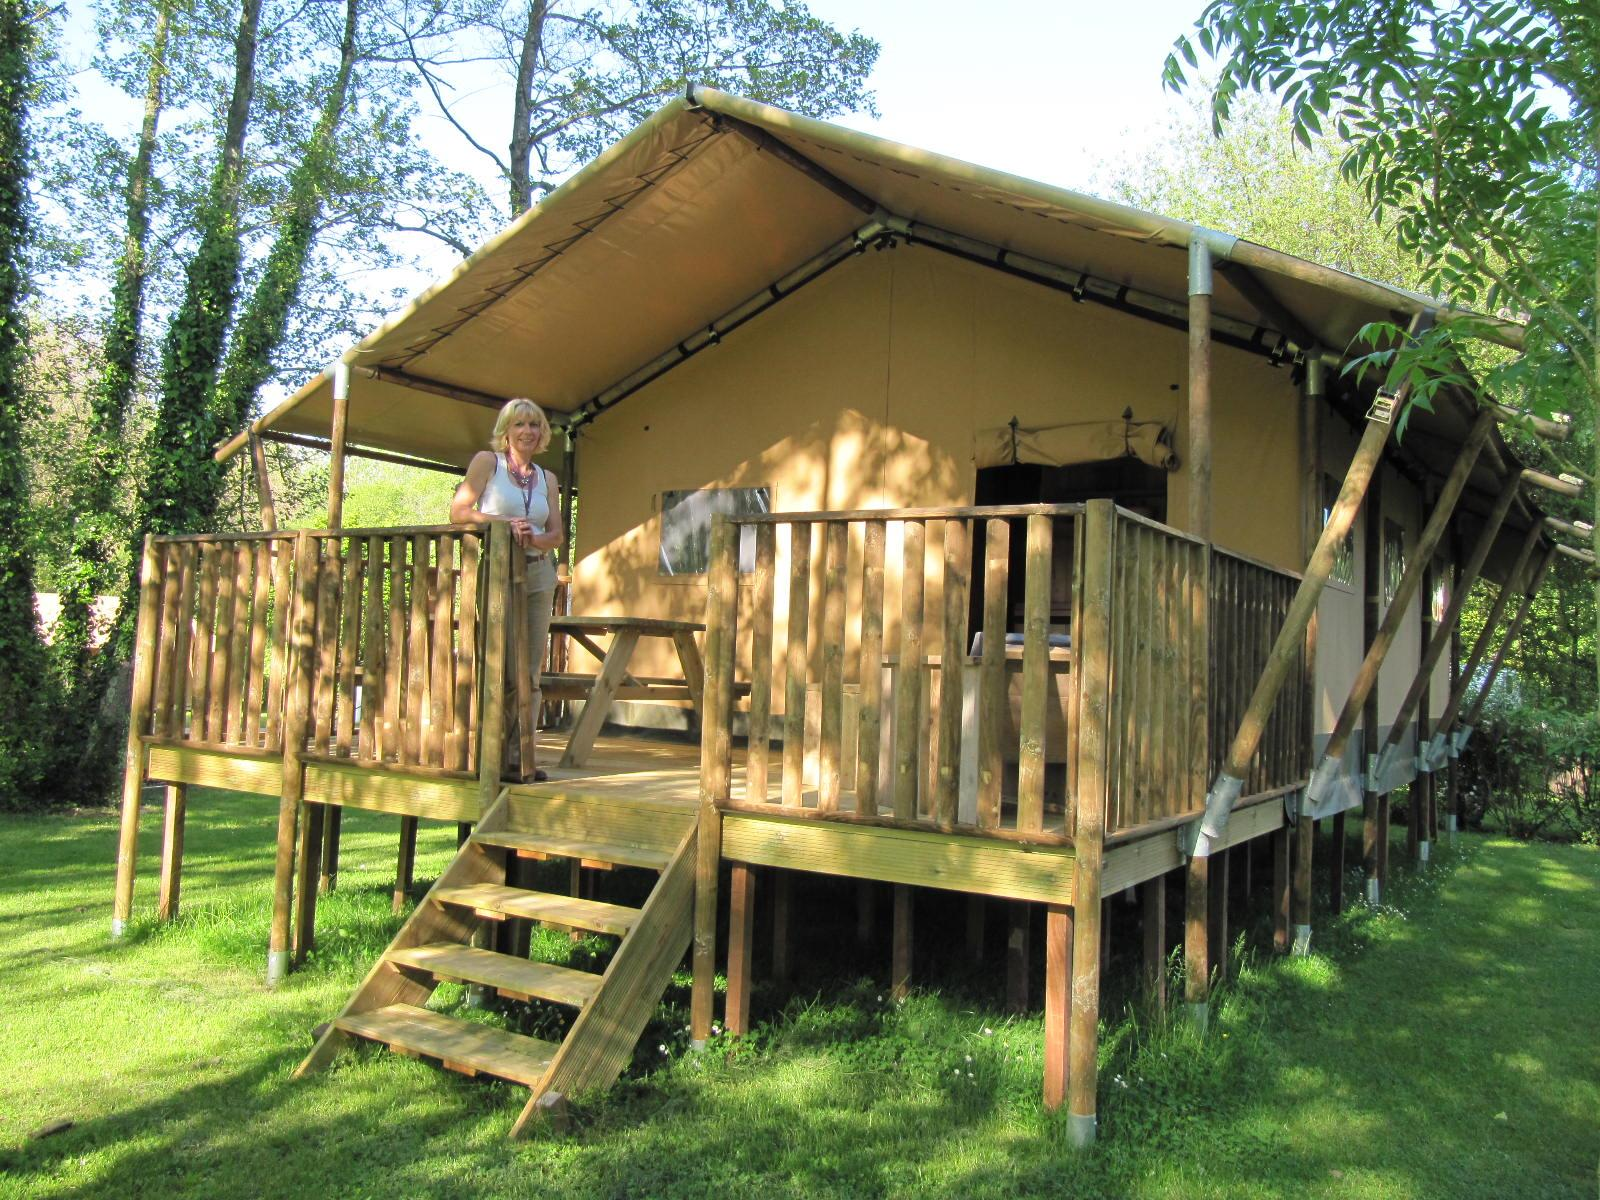 Camping Art Nature Village - Sixt-sur-Aff